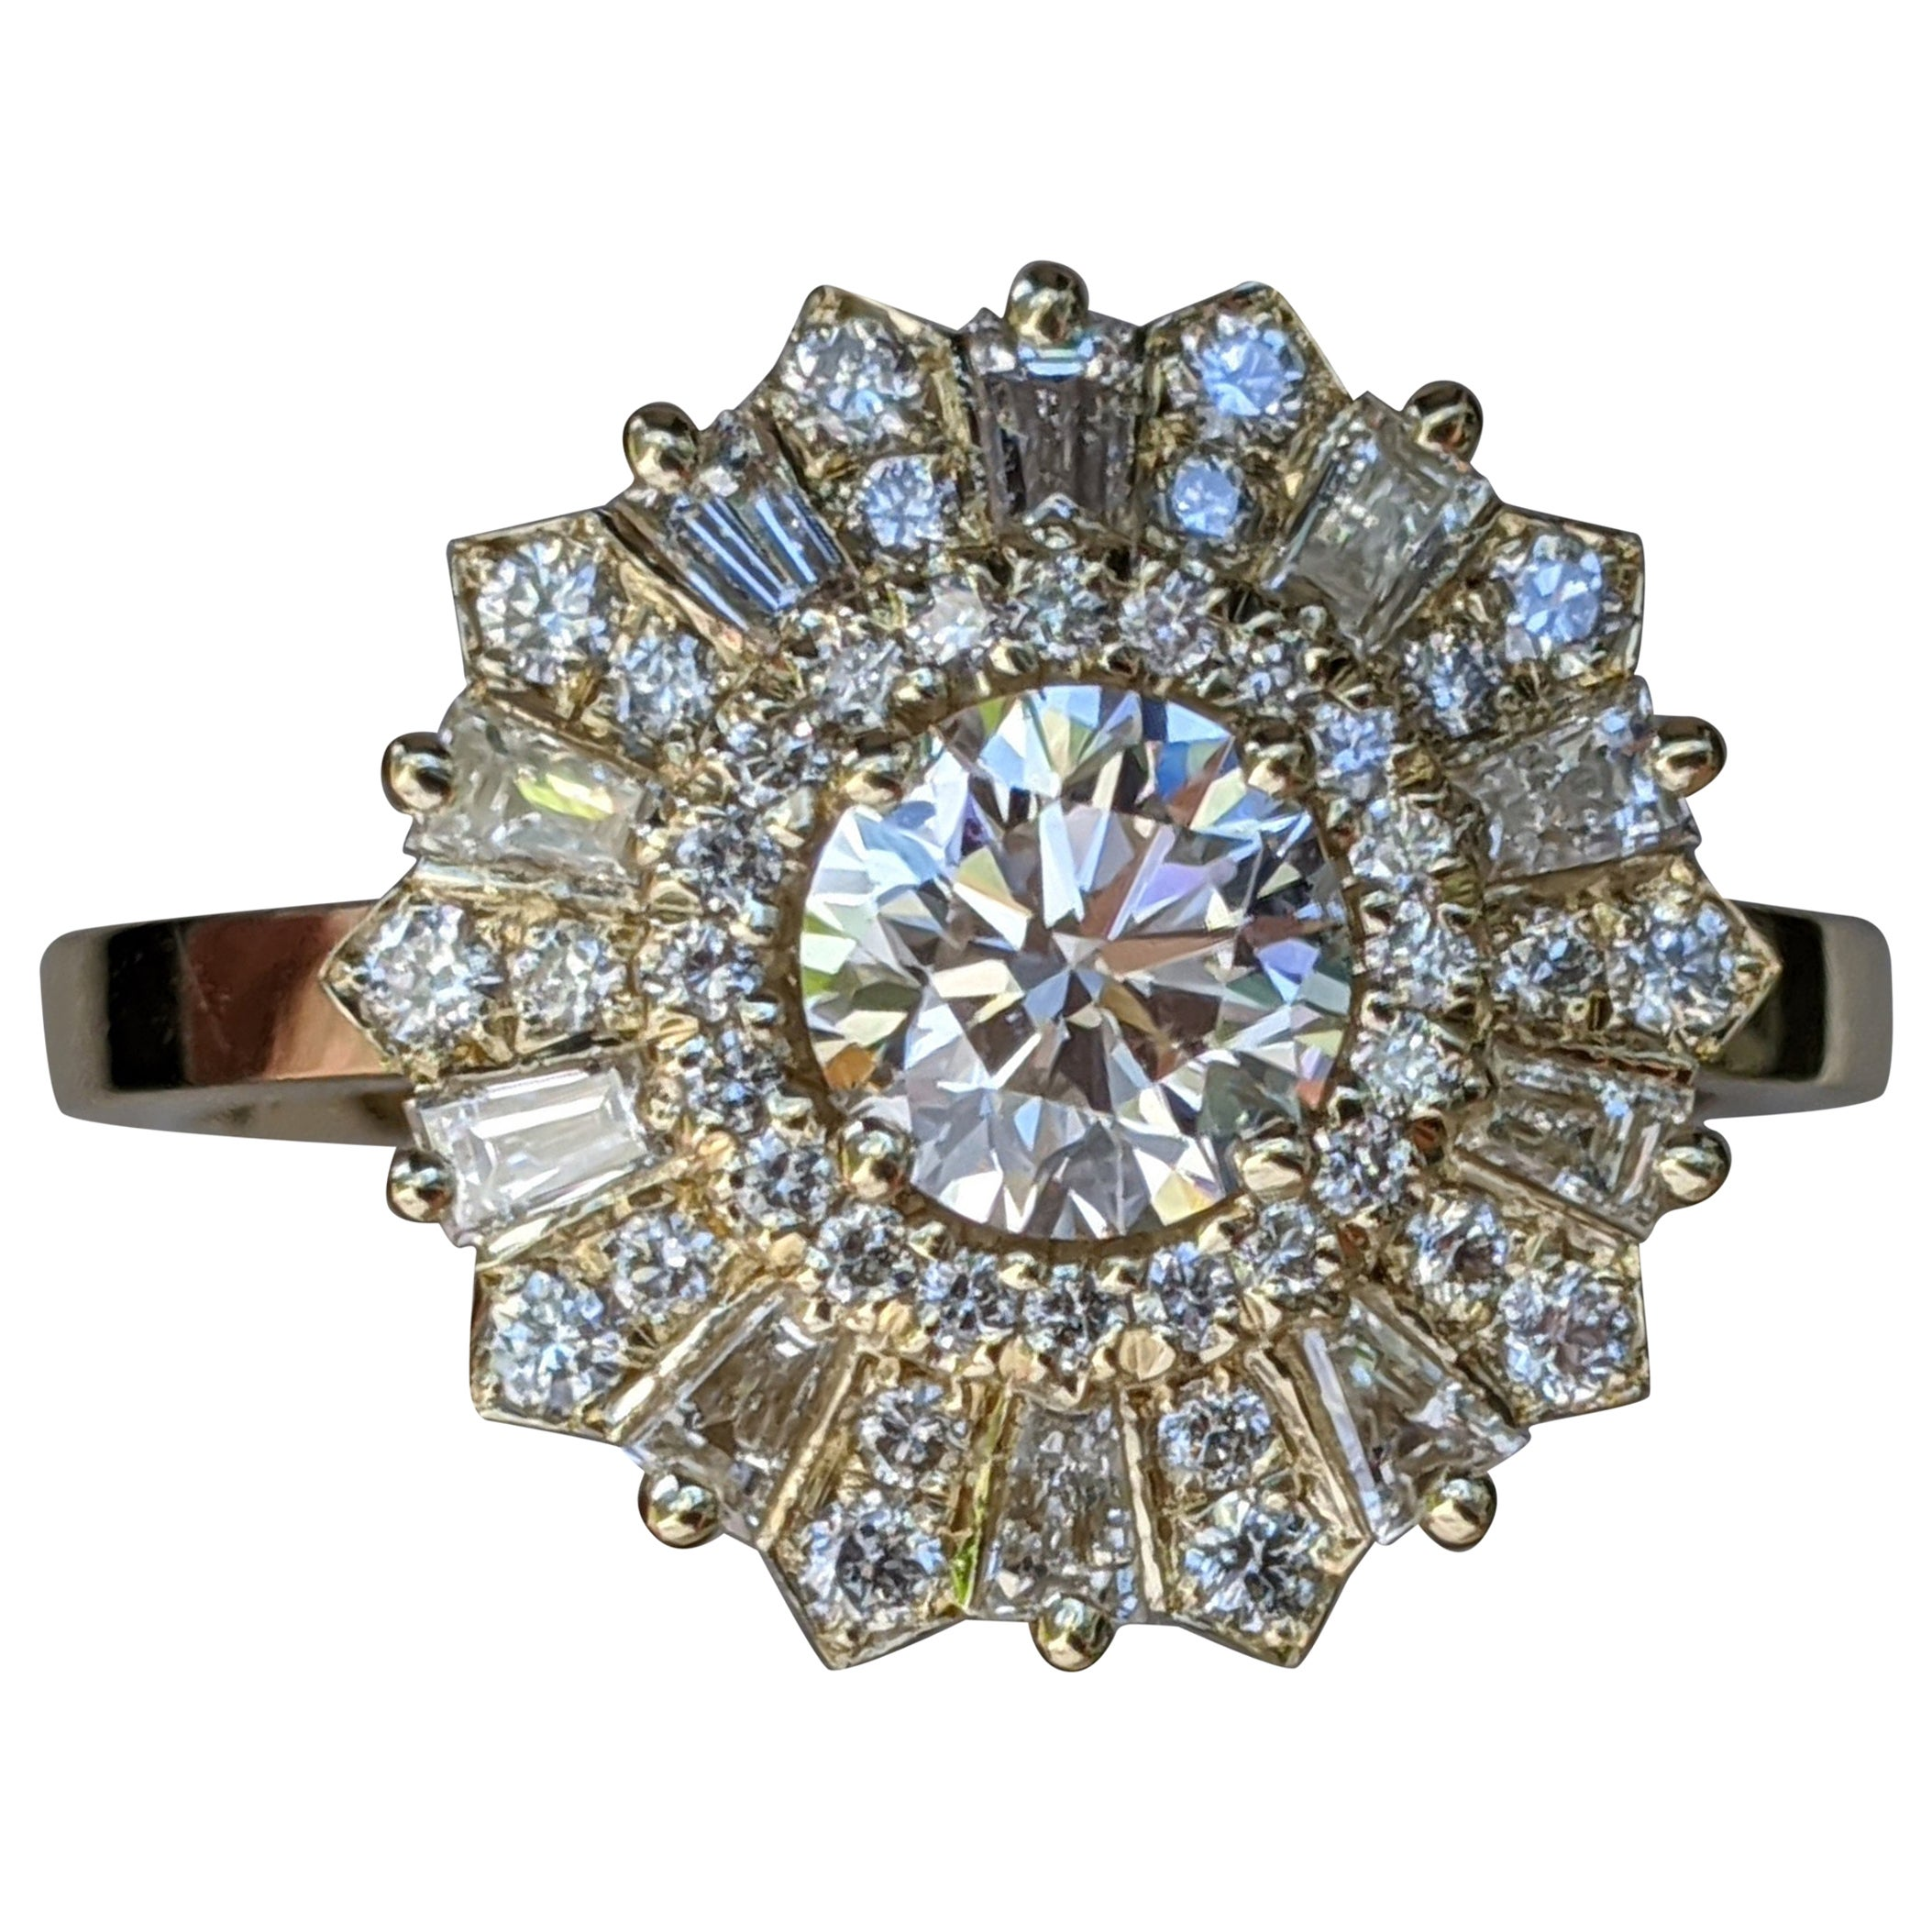 1 1/2 Carat 14 Karat Yellow Gold Vintage Round Diamond Ring, Gatsby Halo Ring